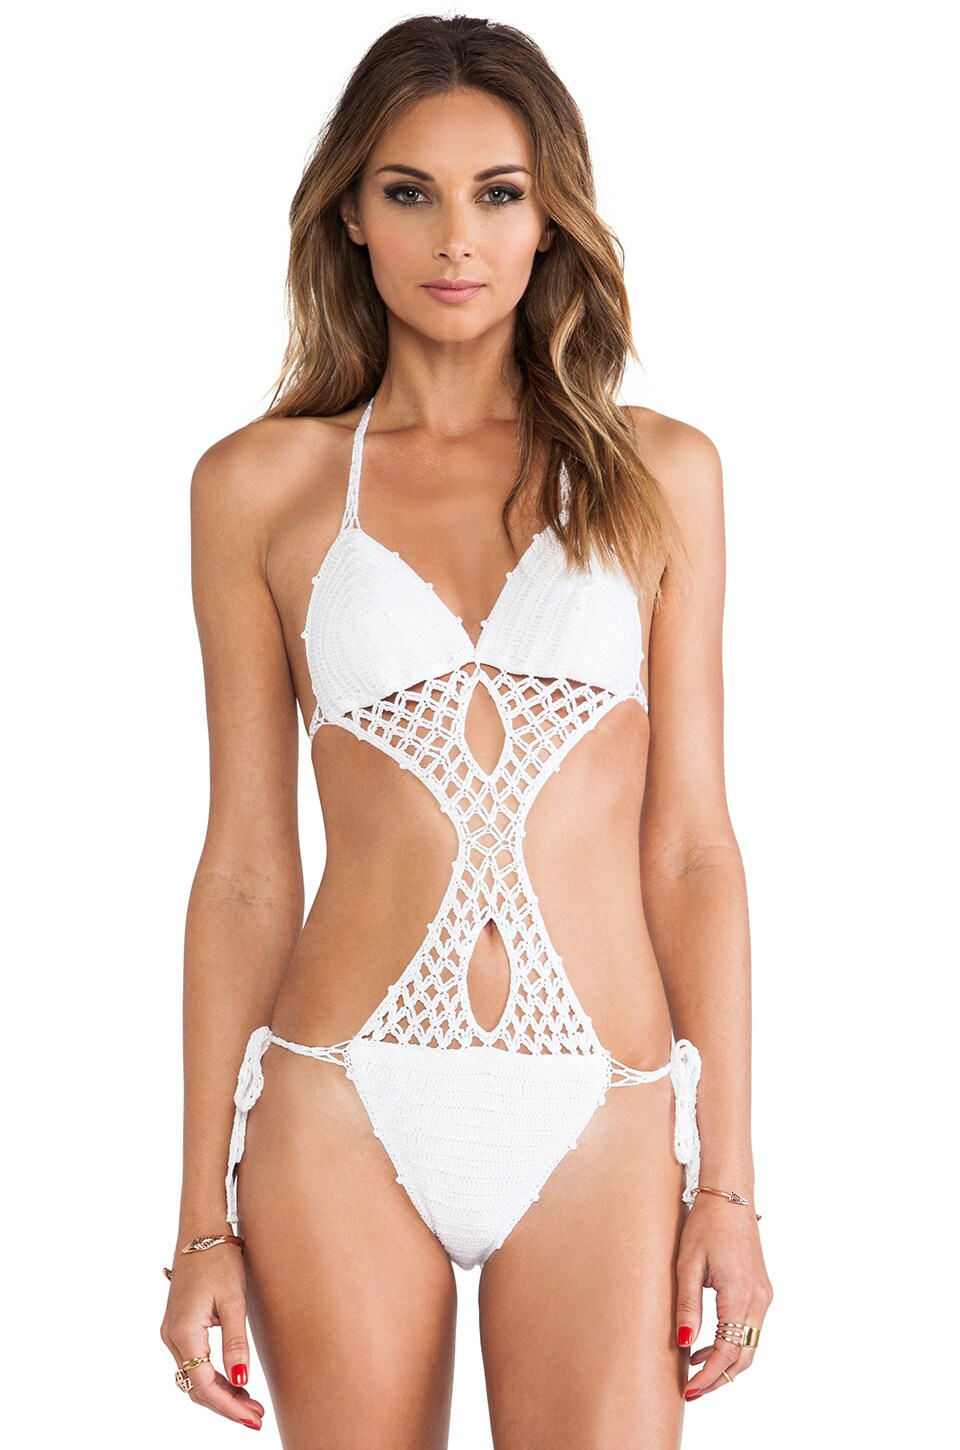 Anna Kosturova South Beach Suit in White